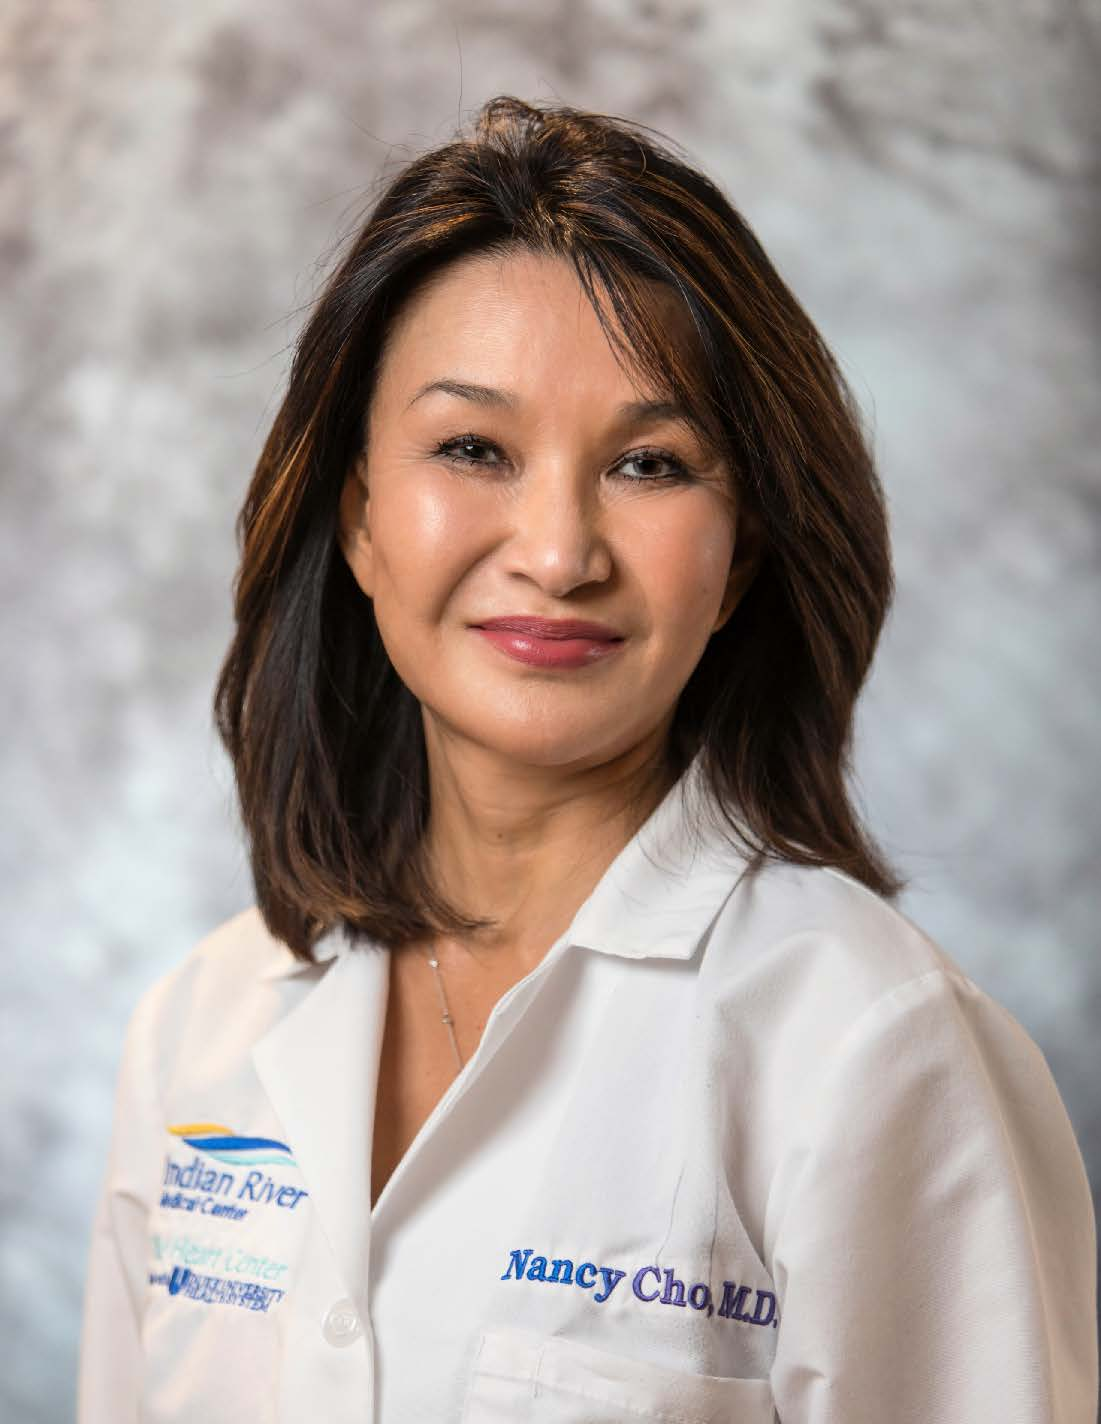 Nancy Cho, M.D.